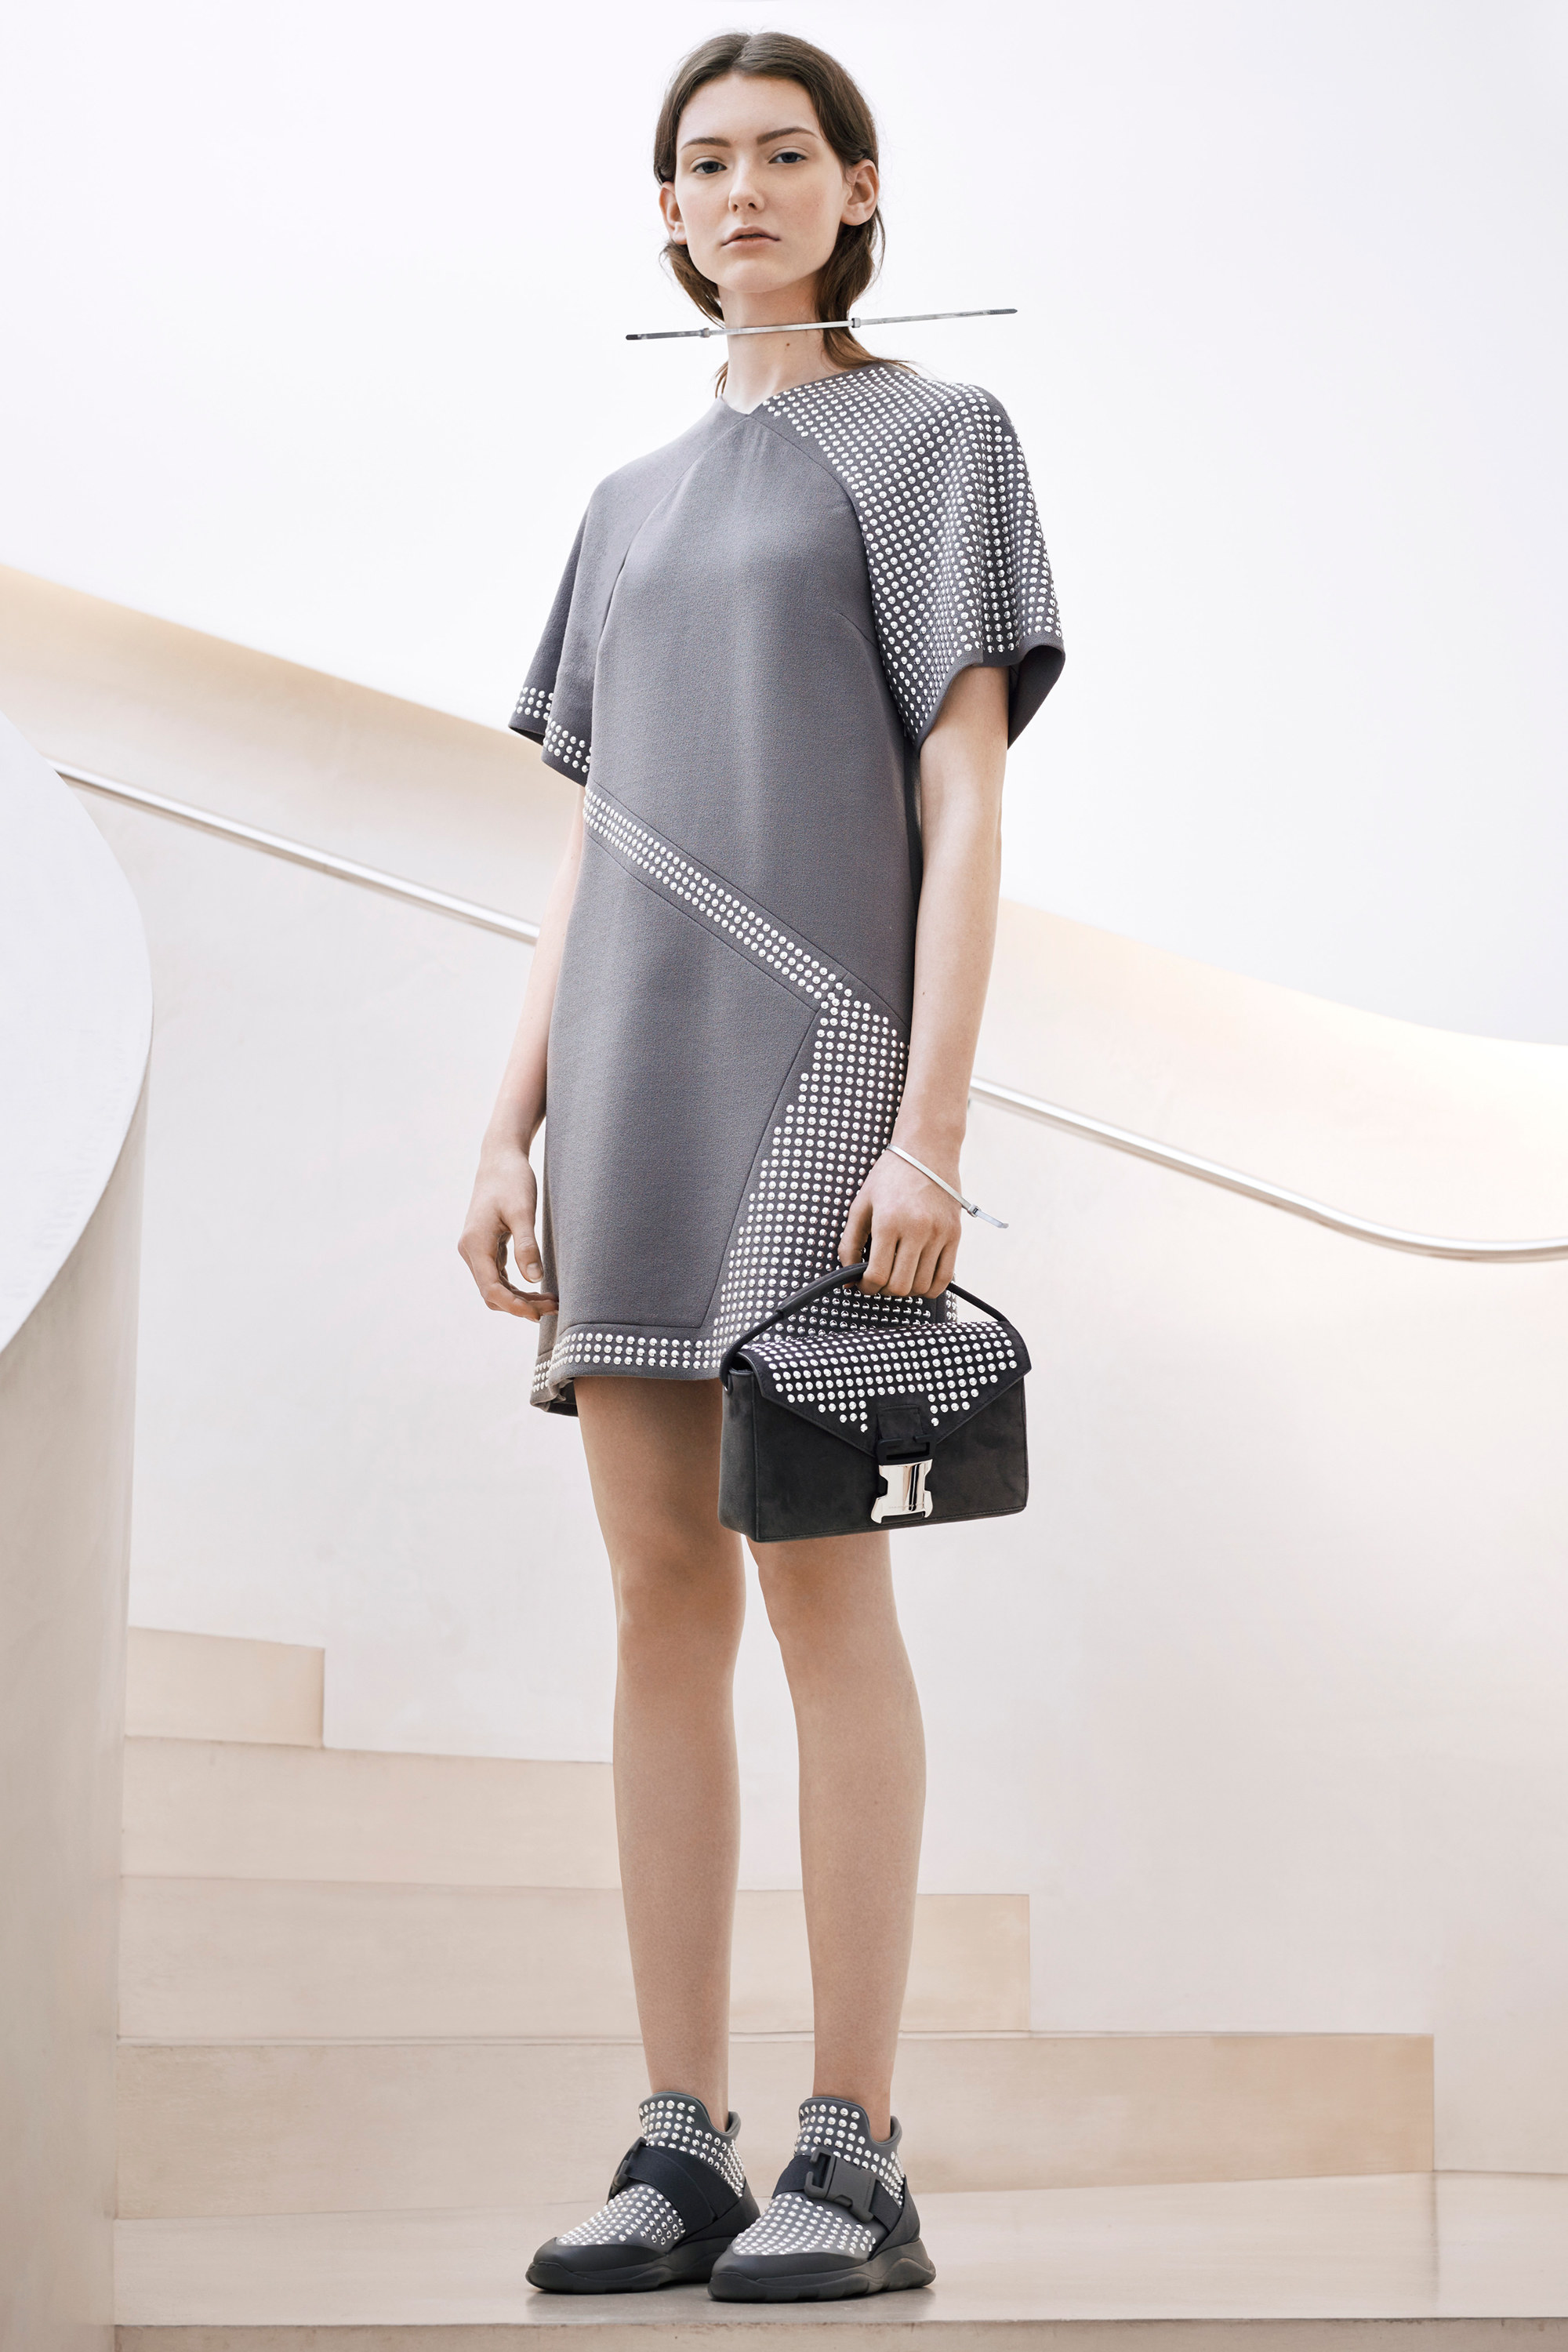 christopher-kane-pre-fall-2016-lookbook-32.jpg